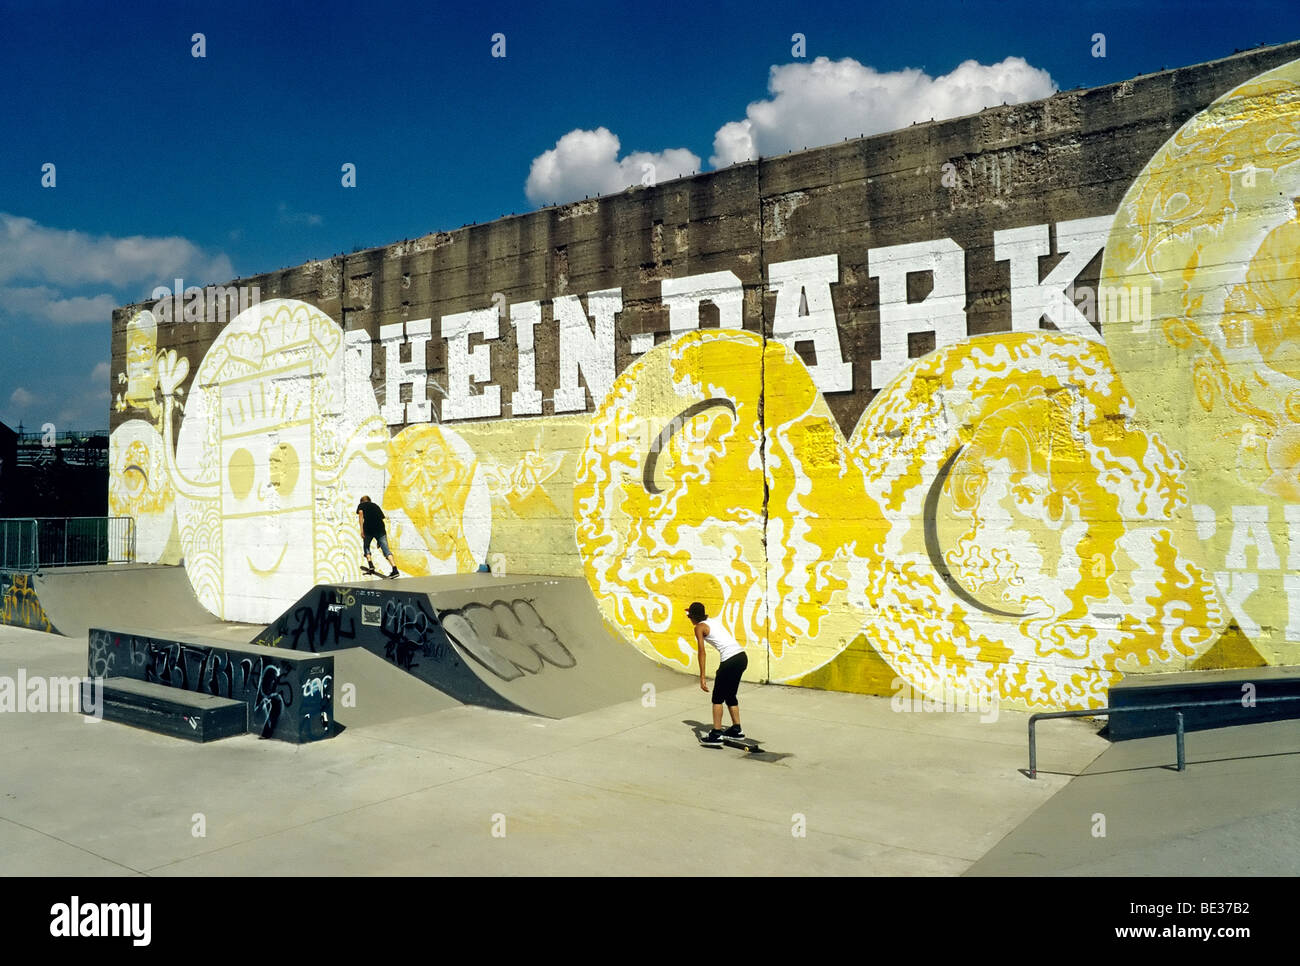 Skate park, old concrete wall with graffiti, Rheinpark, new city ...